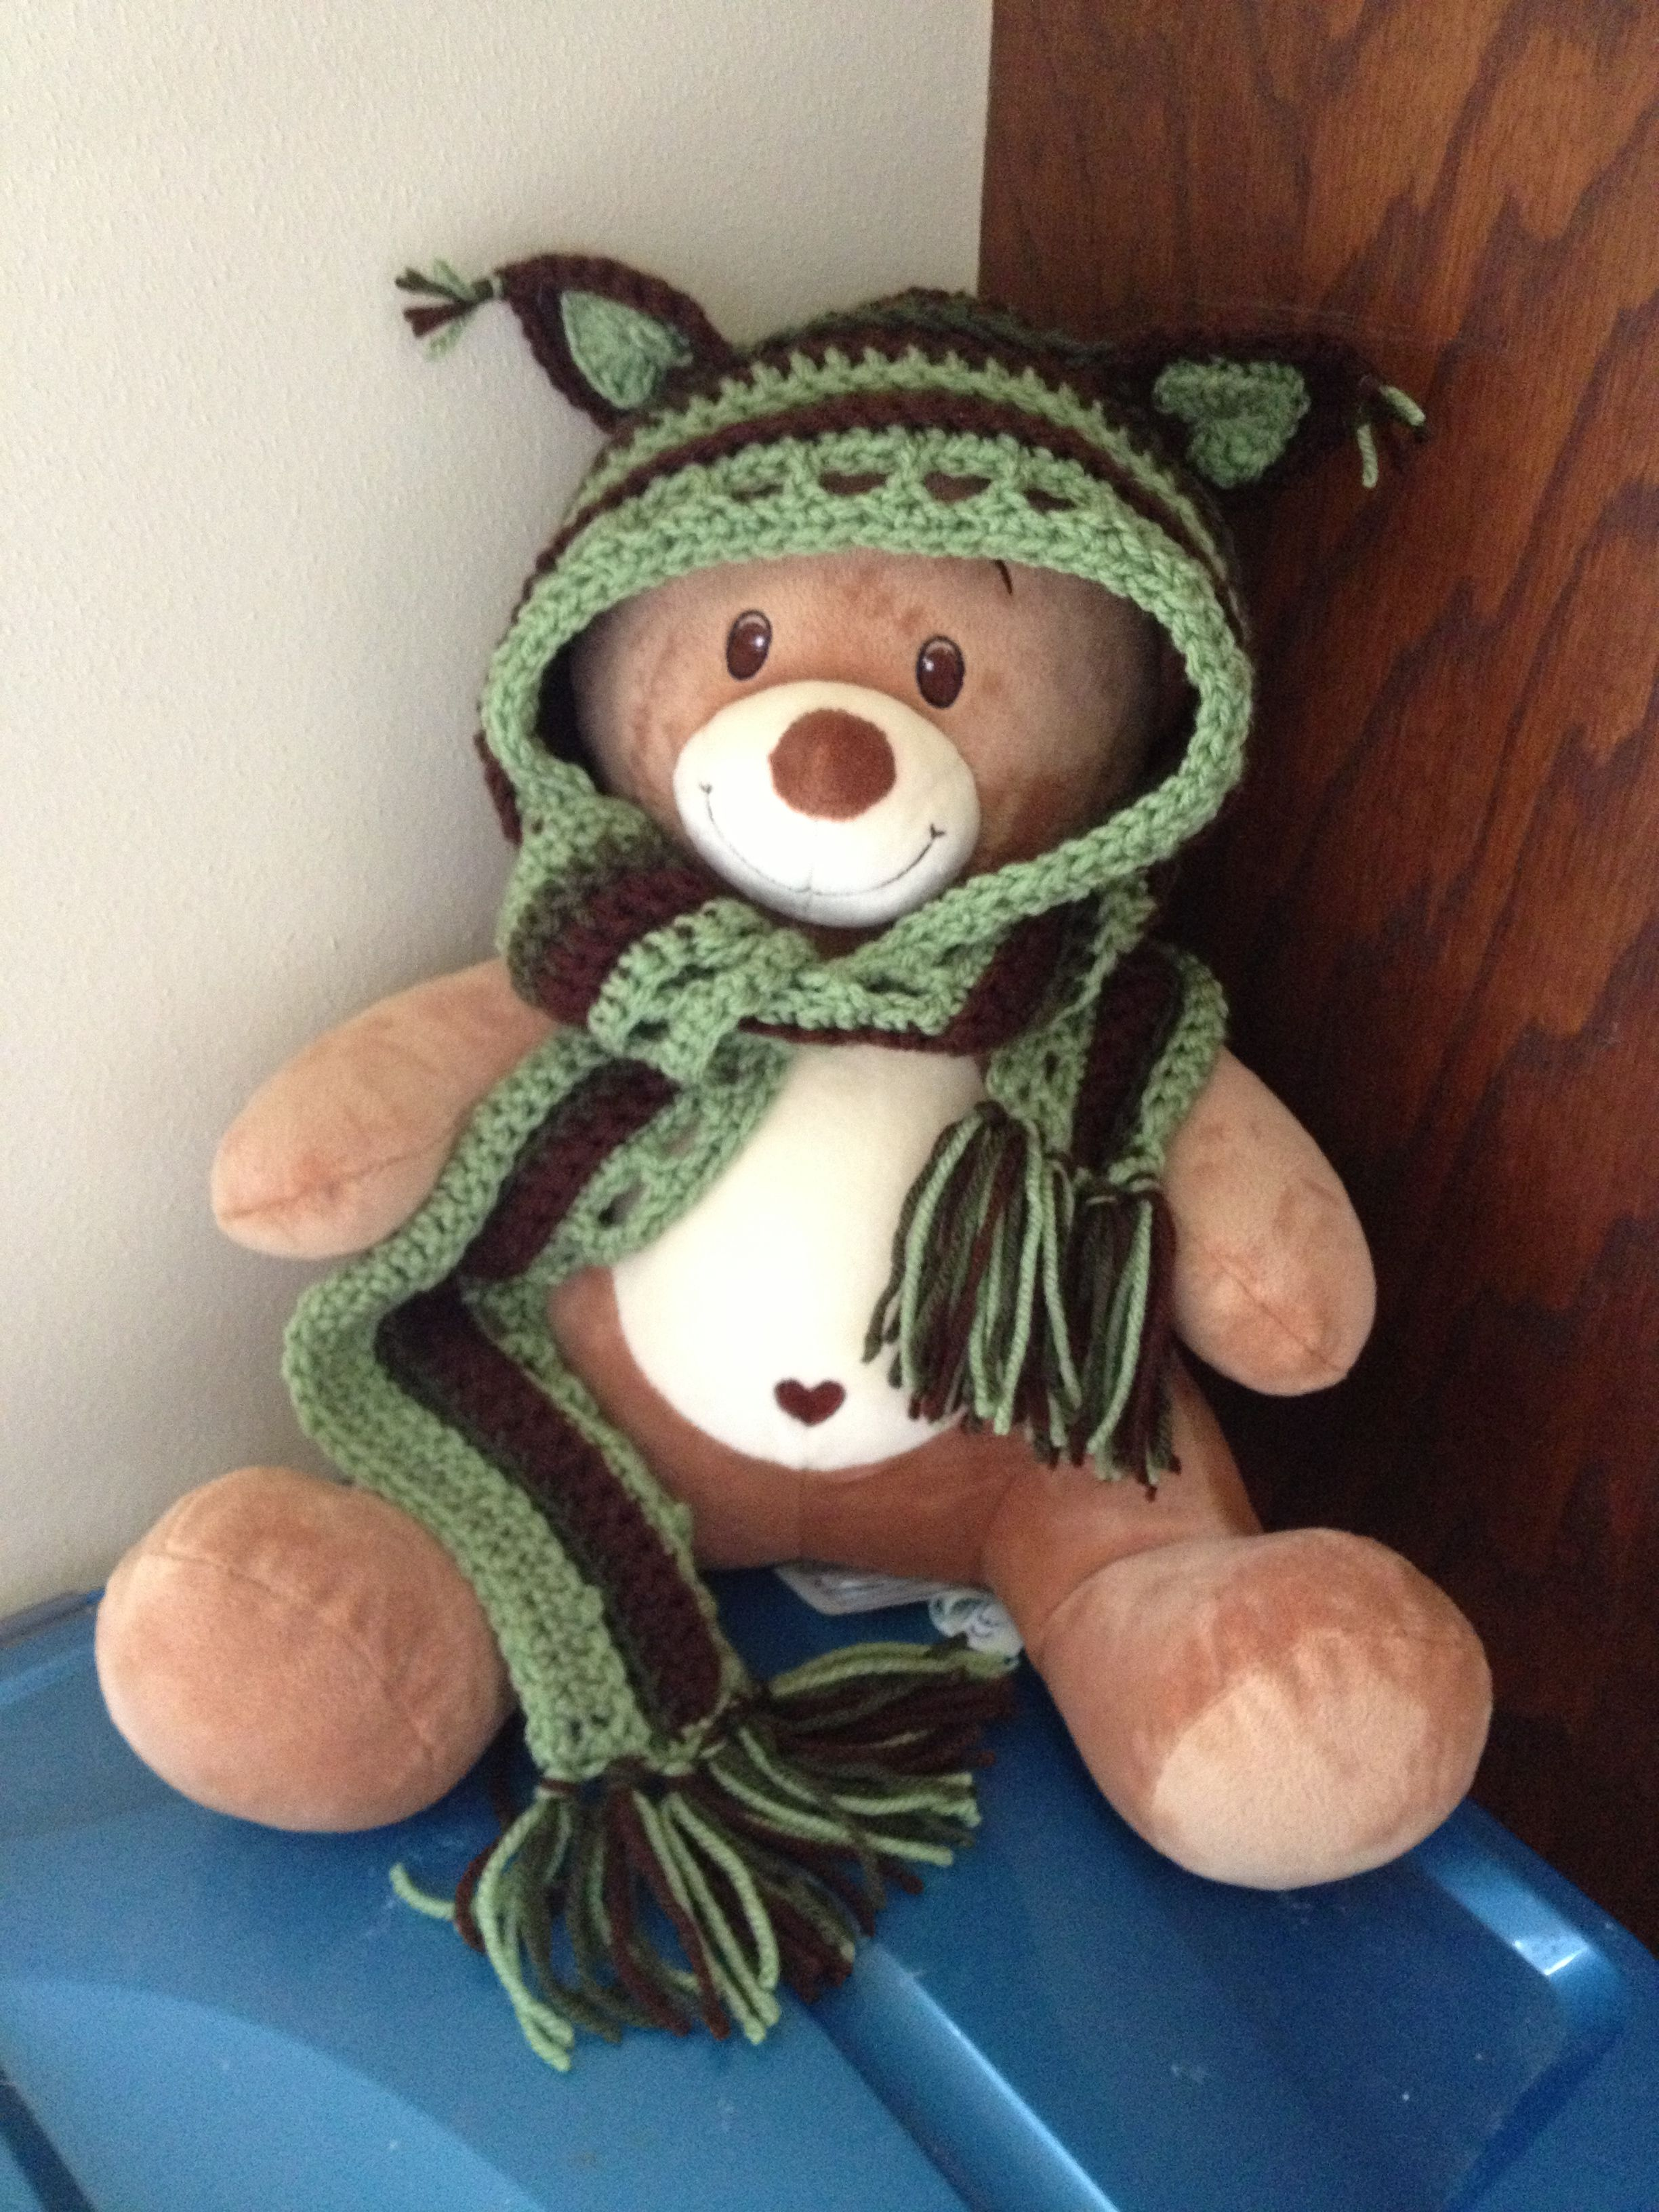 Crochet Pattern Hooded Scarf With Ears : Crochet hooded toddler scarf with ears Hollys Hooks ...